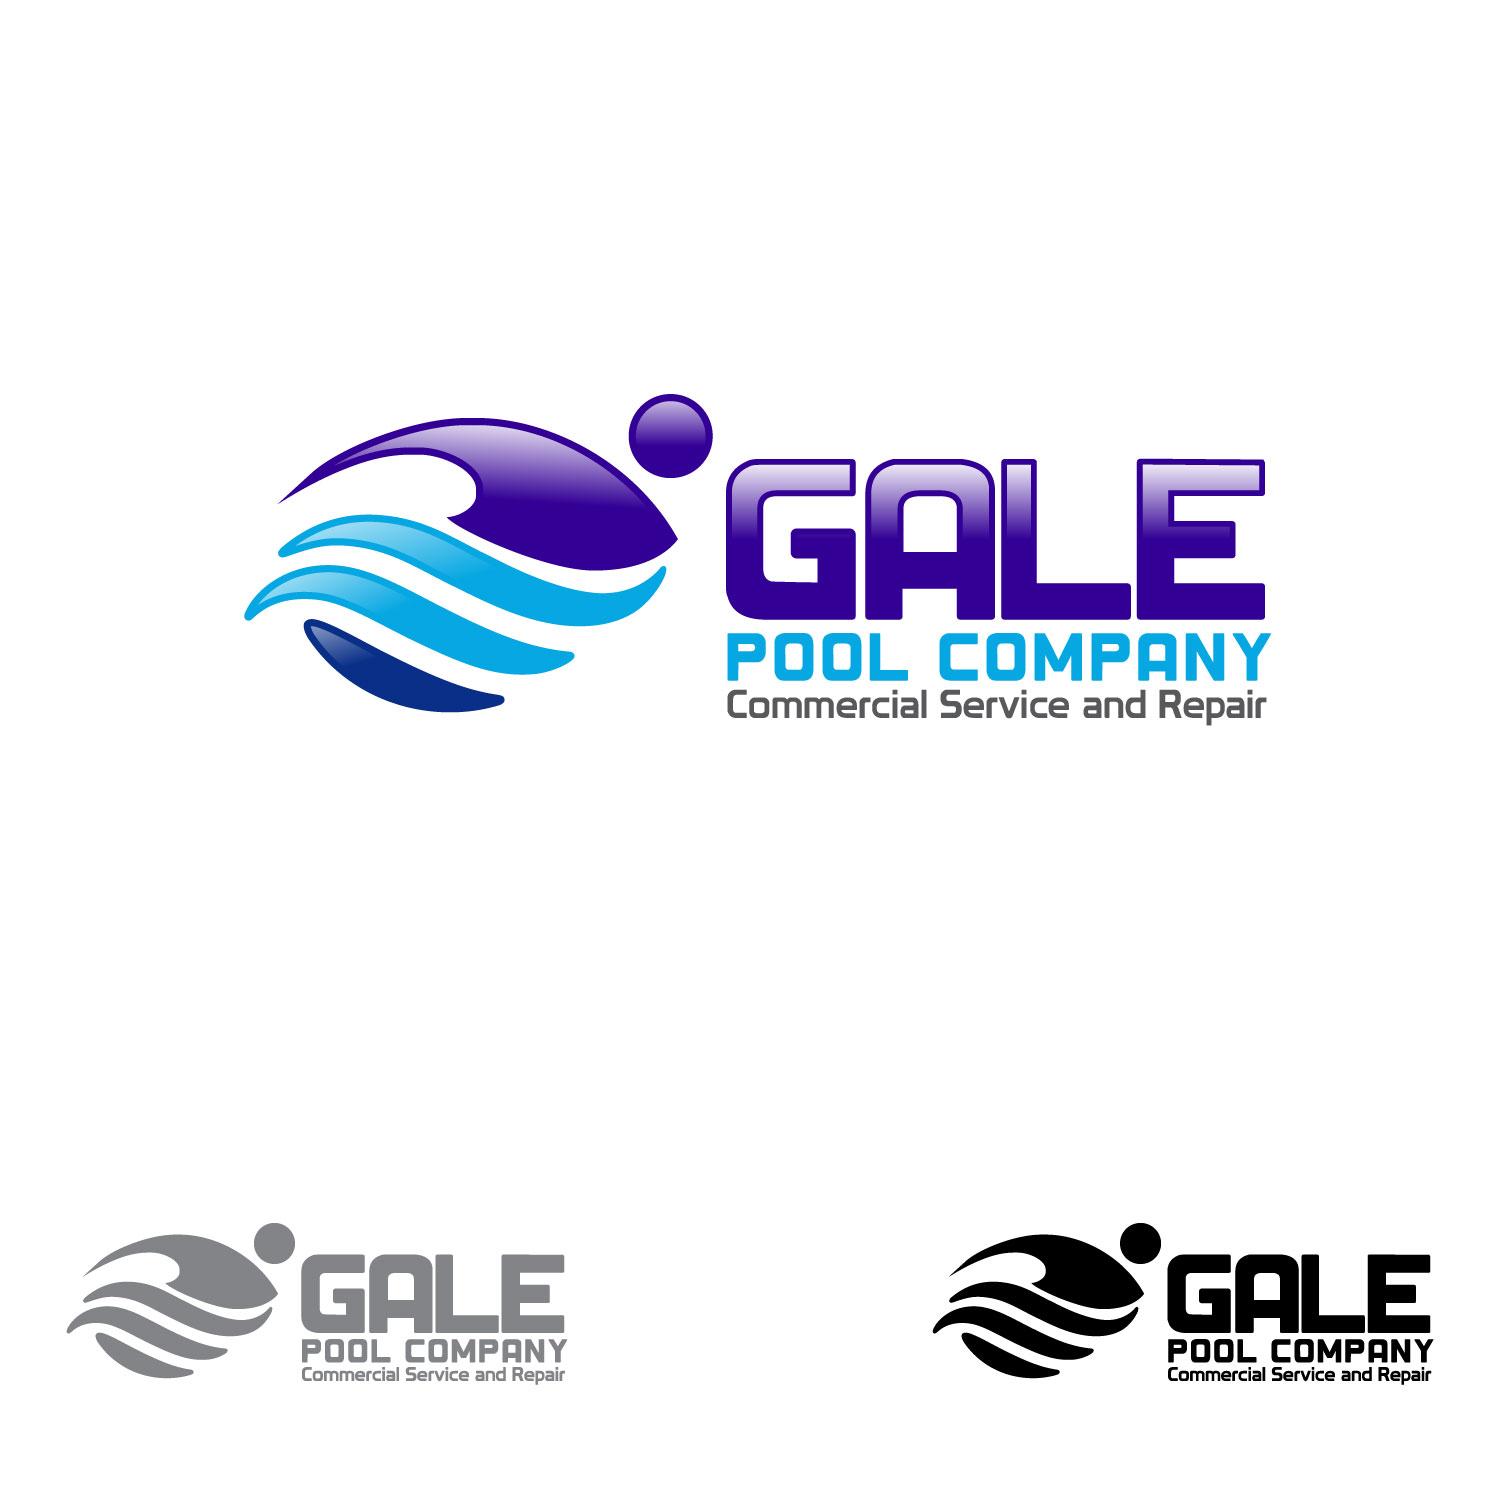 Logo Design by lagalag - Entry No. 122 in the Logo Design Contest Imaginative Logo Design for Gale Pool Company.